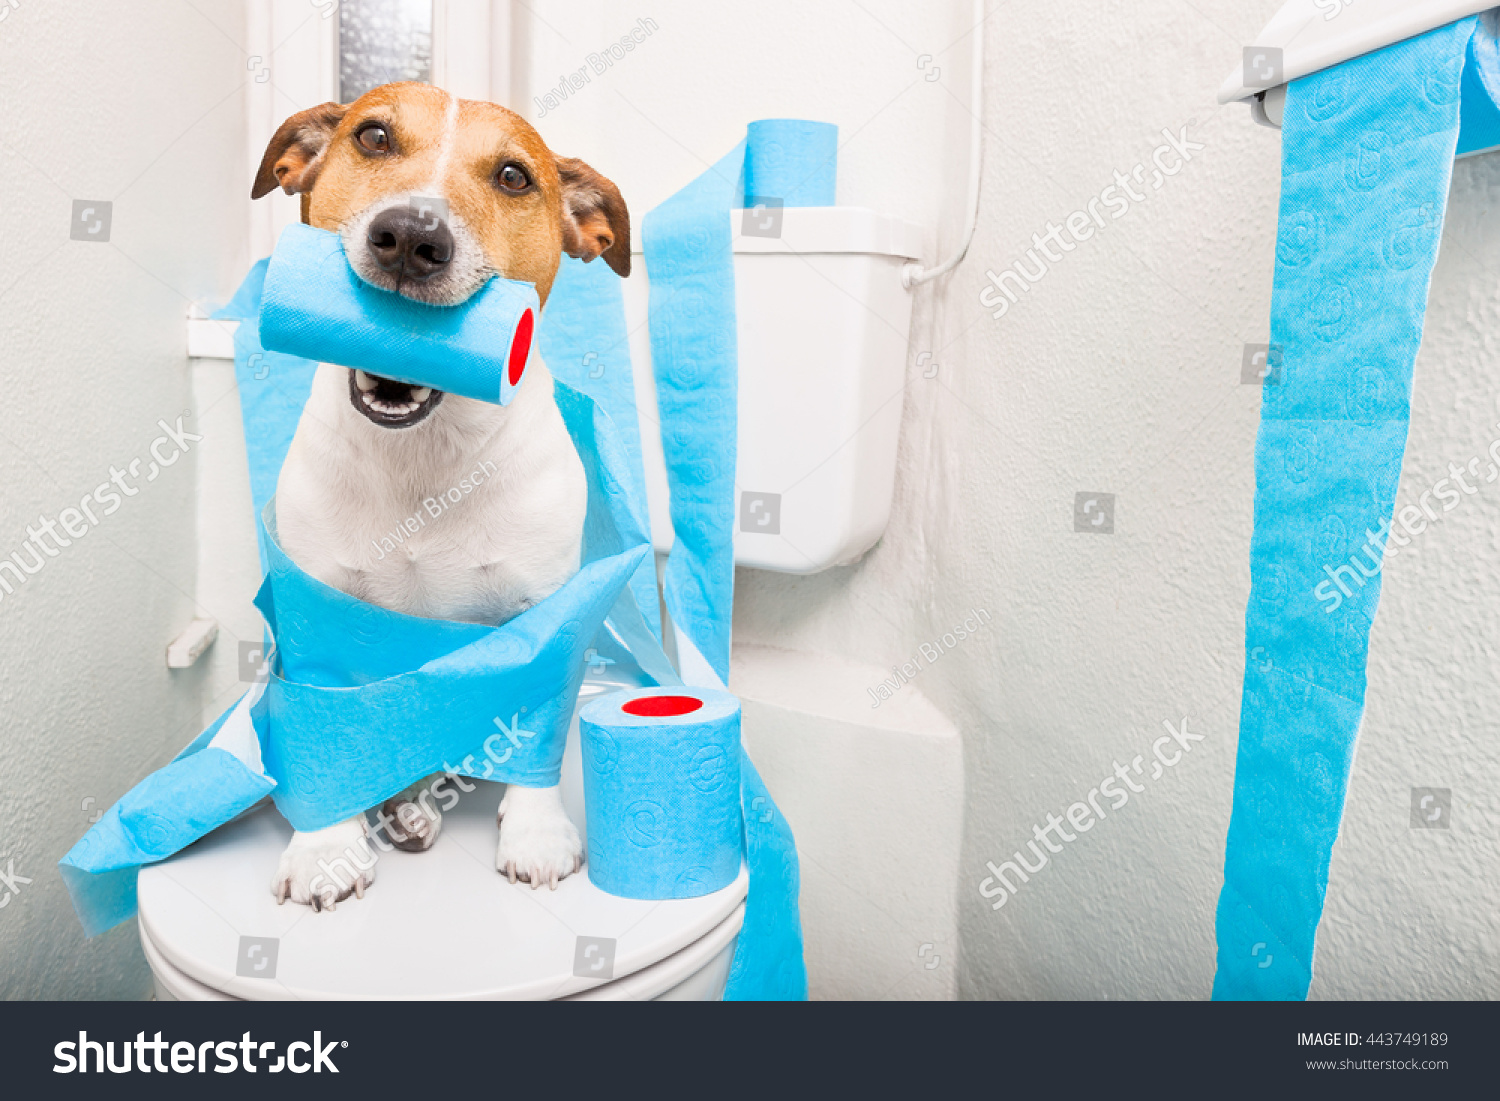 How to go to bathroom when constipated - Jack Russell Terrier Sitting On A Toilet Seat With Digestion Problems Or Constipation Looking Very